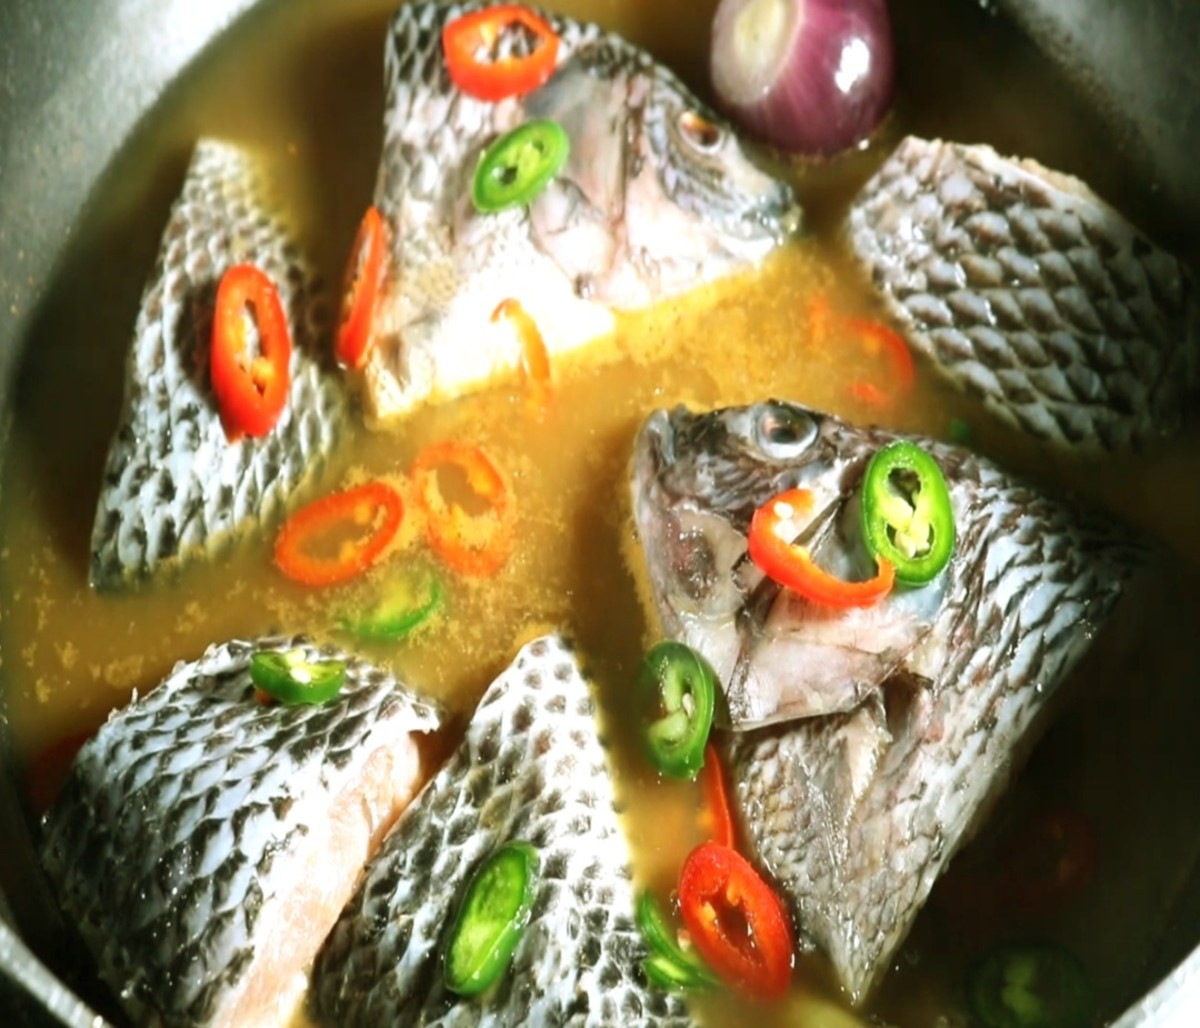 After the fish is cooked, put in the chopped red and green bird's eye chili